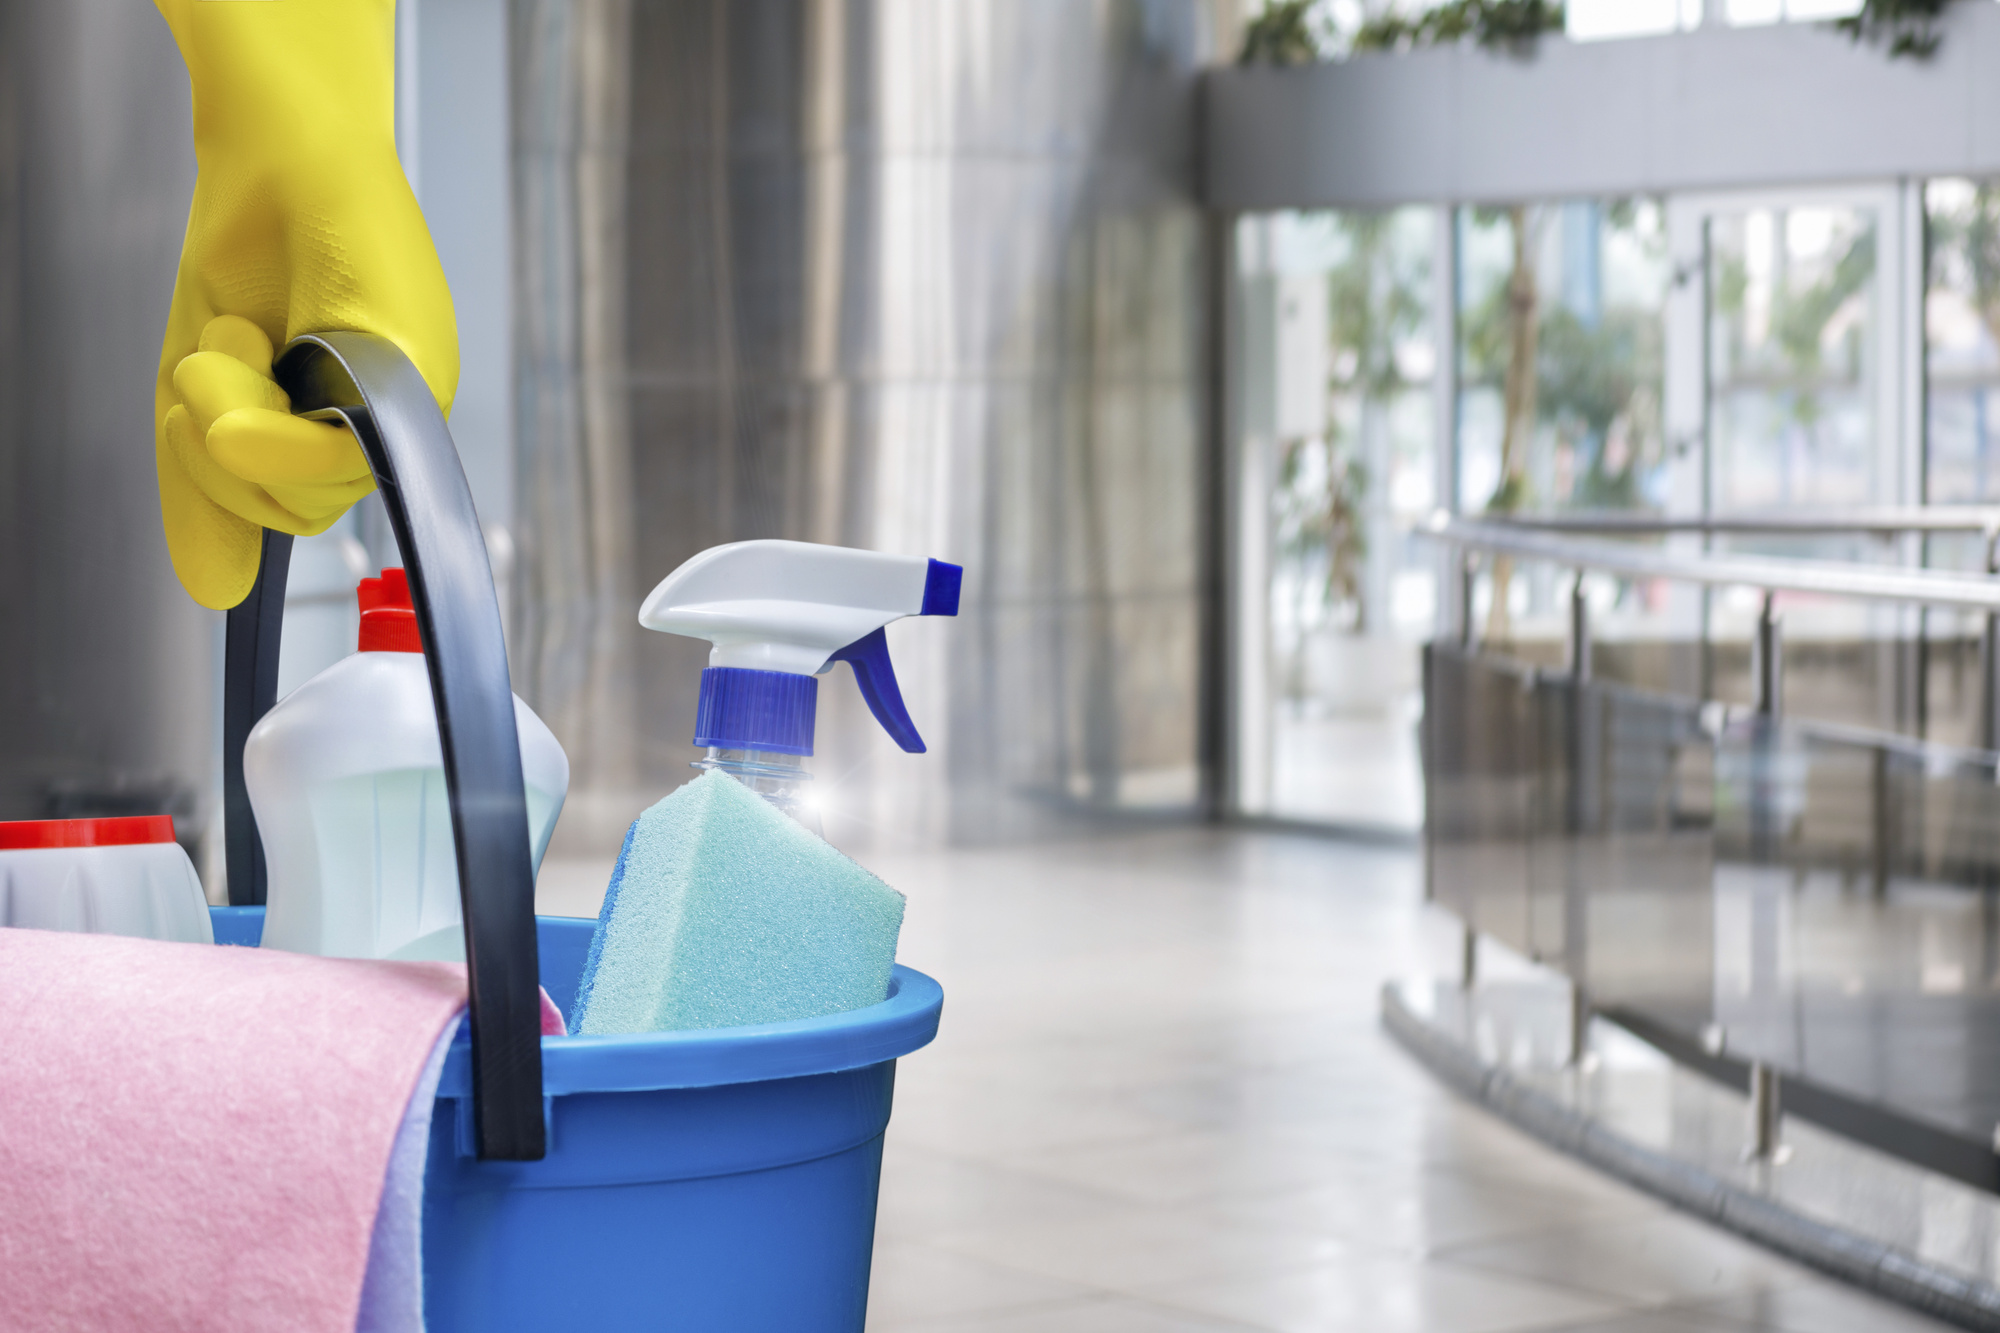 10 Funny Quotes About Cleaning That Will Make Cleaning Fun ...